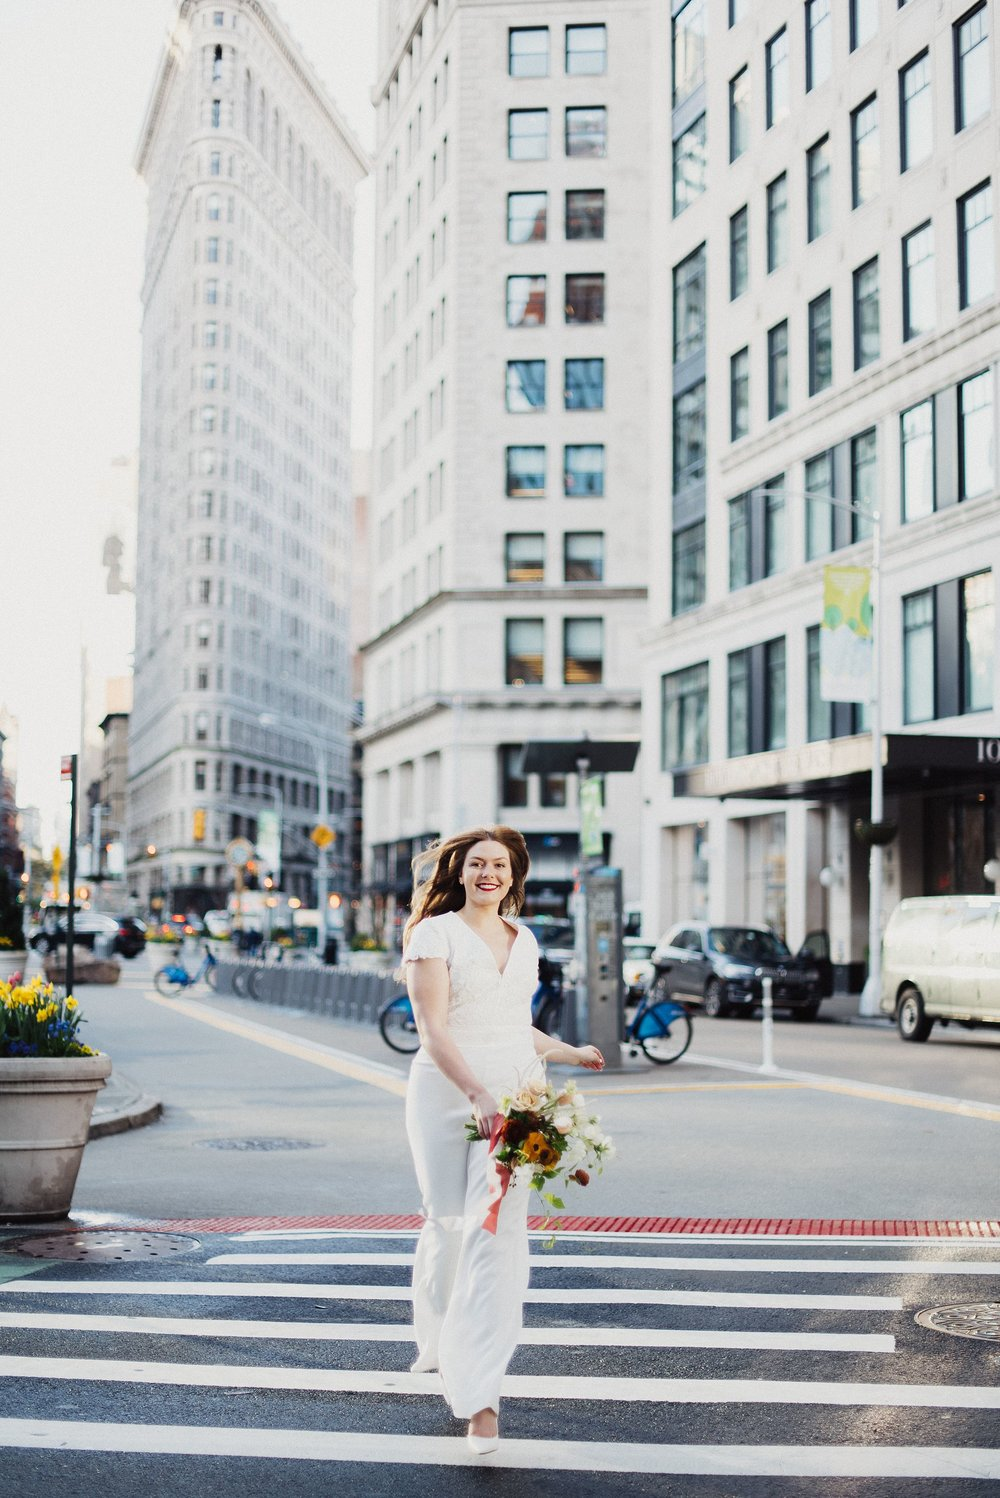 Flatiron Building Elopement